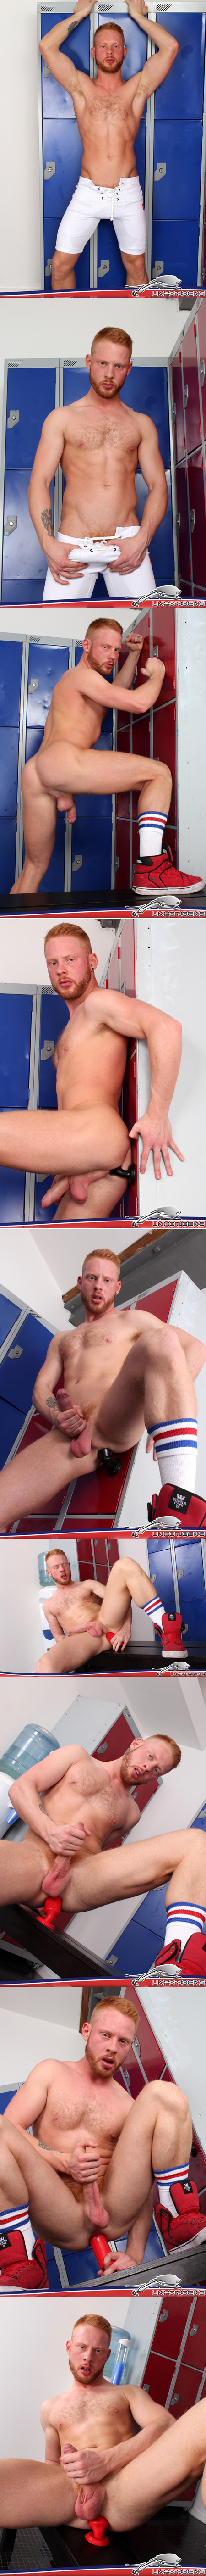 Hairy ginger jock sticking dildos up his ass in the locker room.